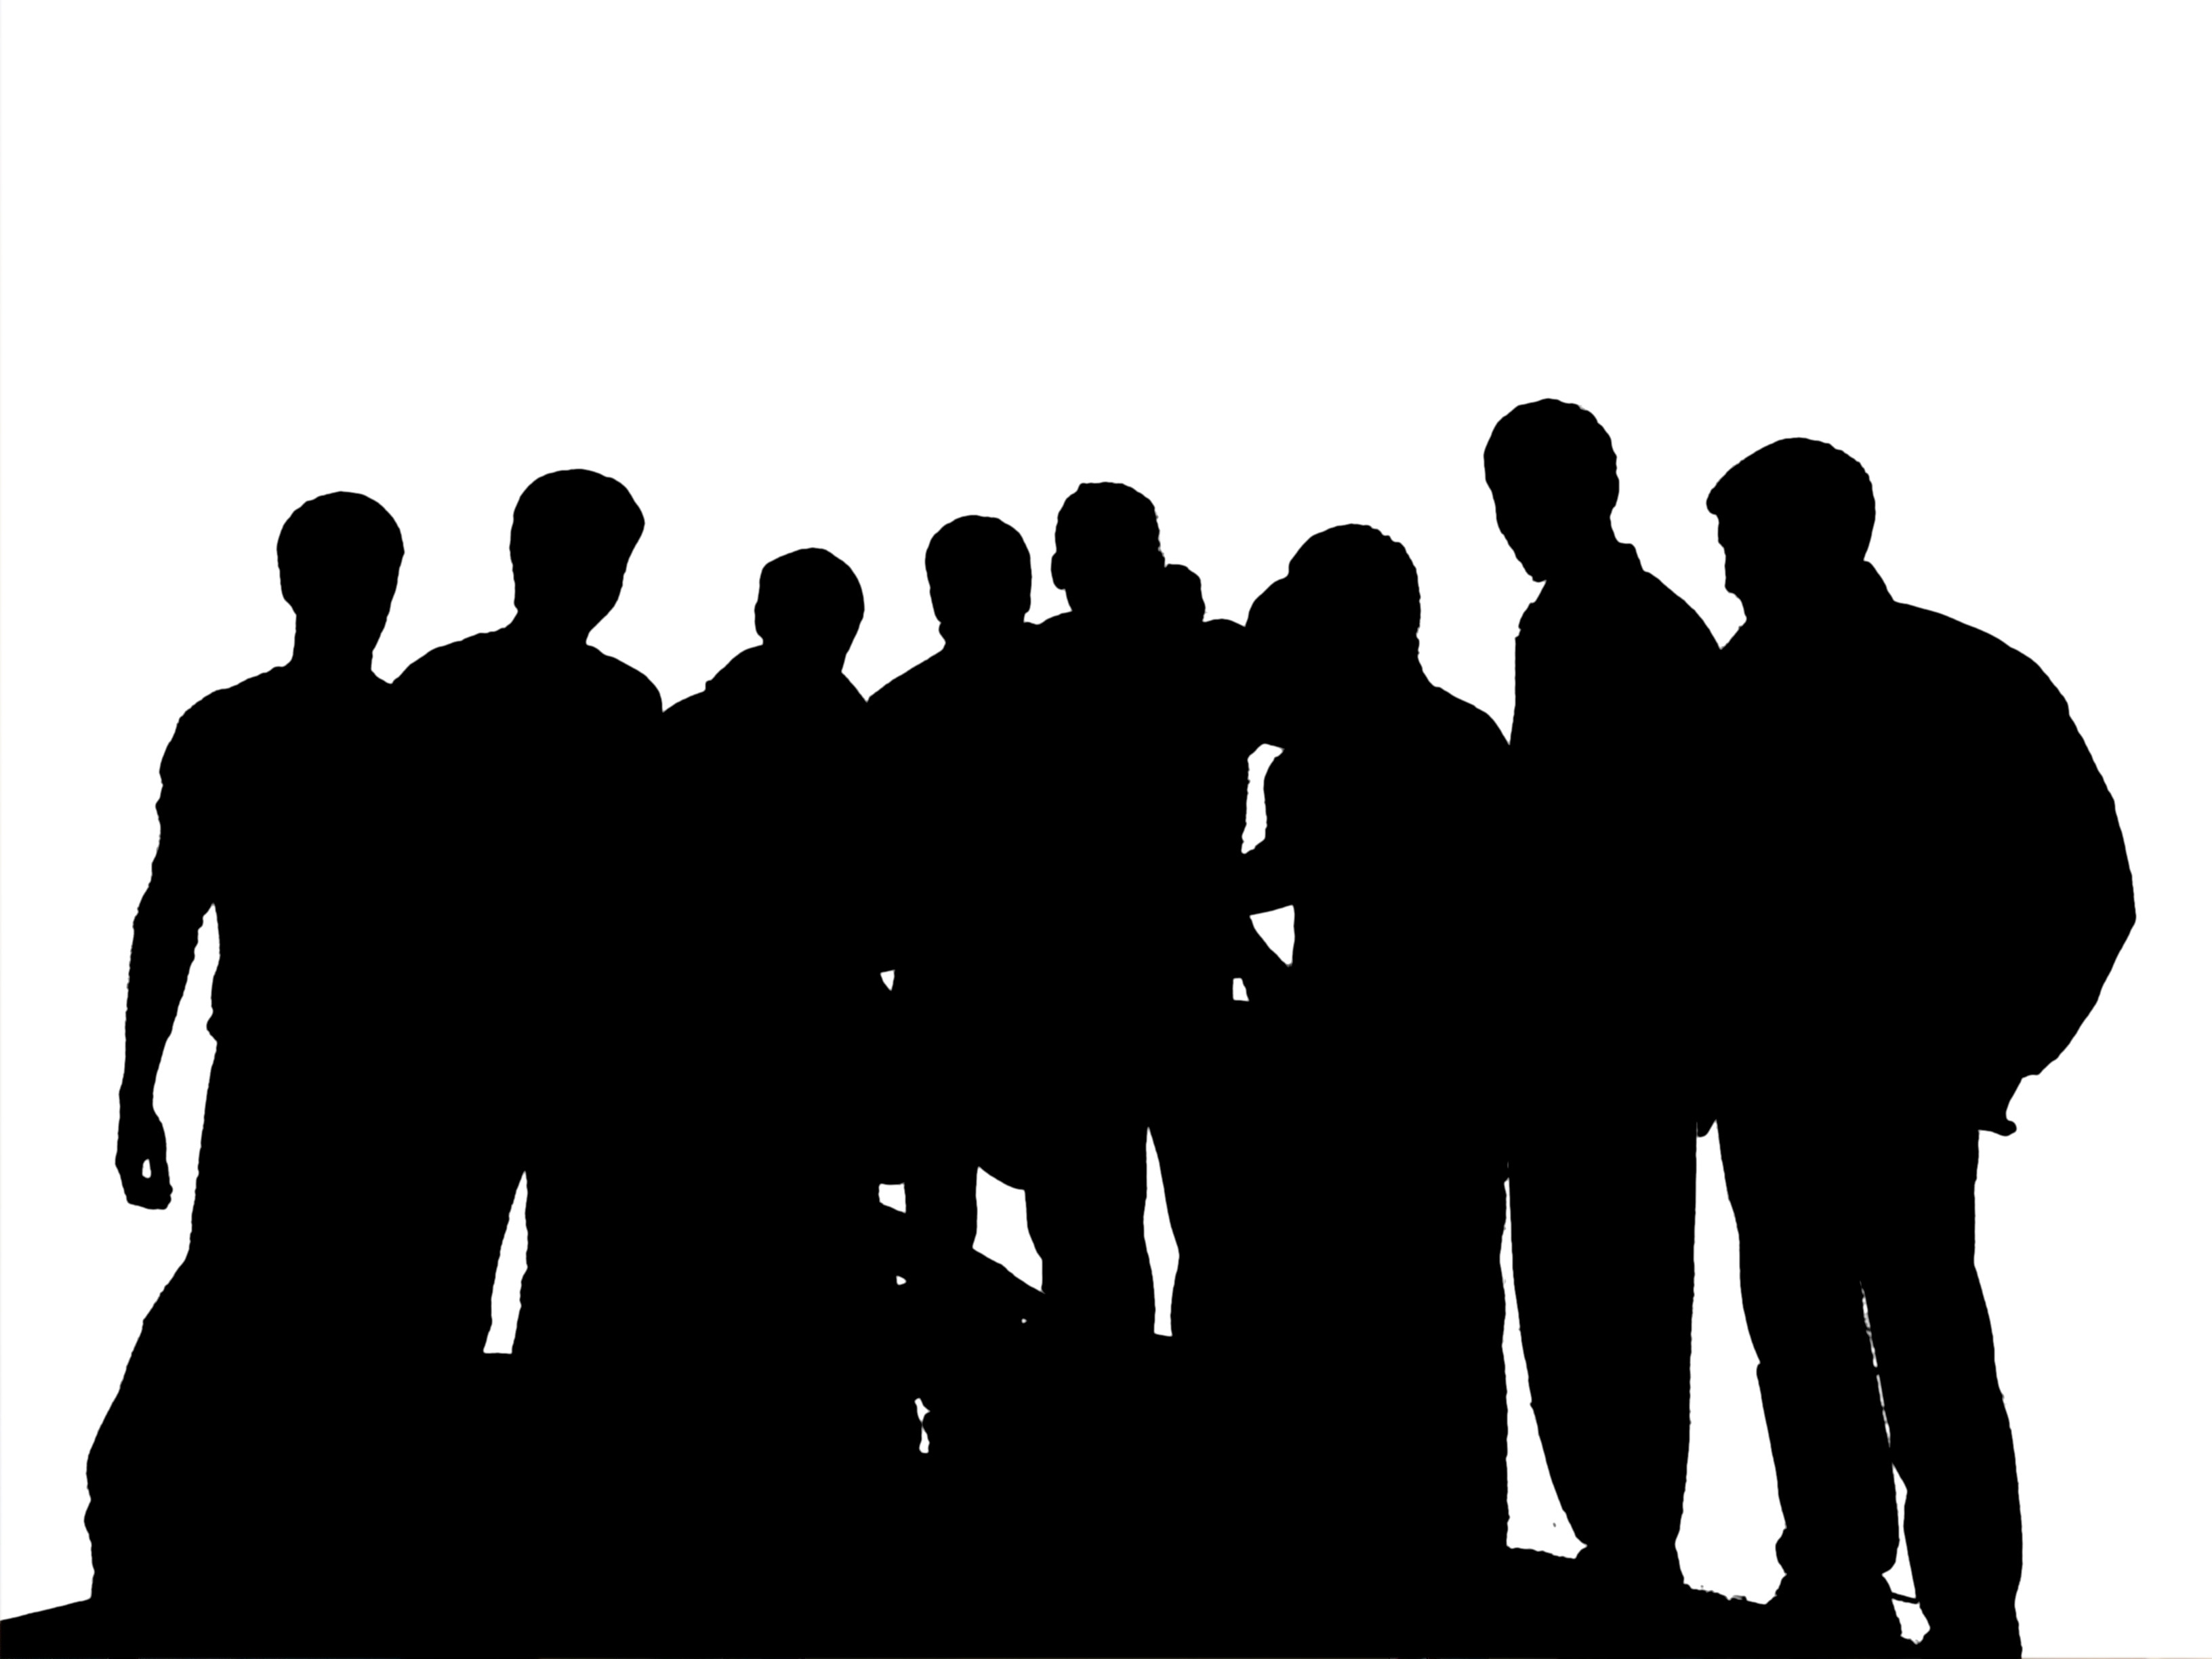 Silhouette People Group Clipart#2154563.